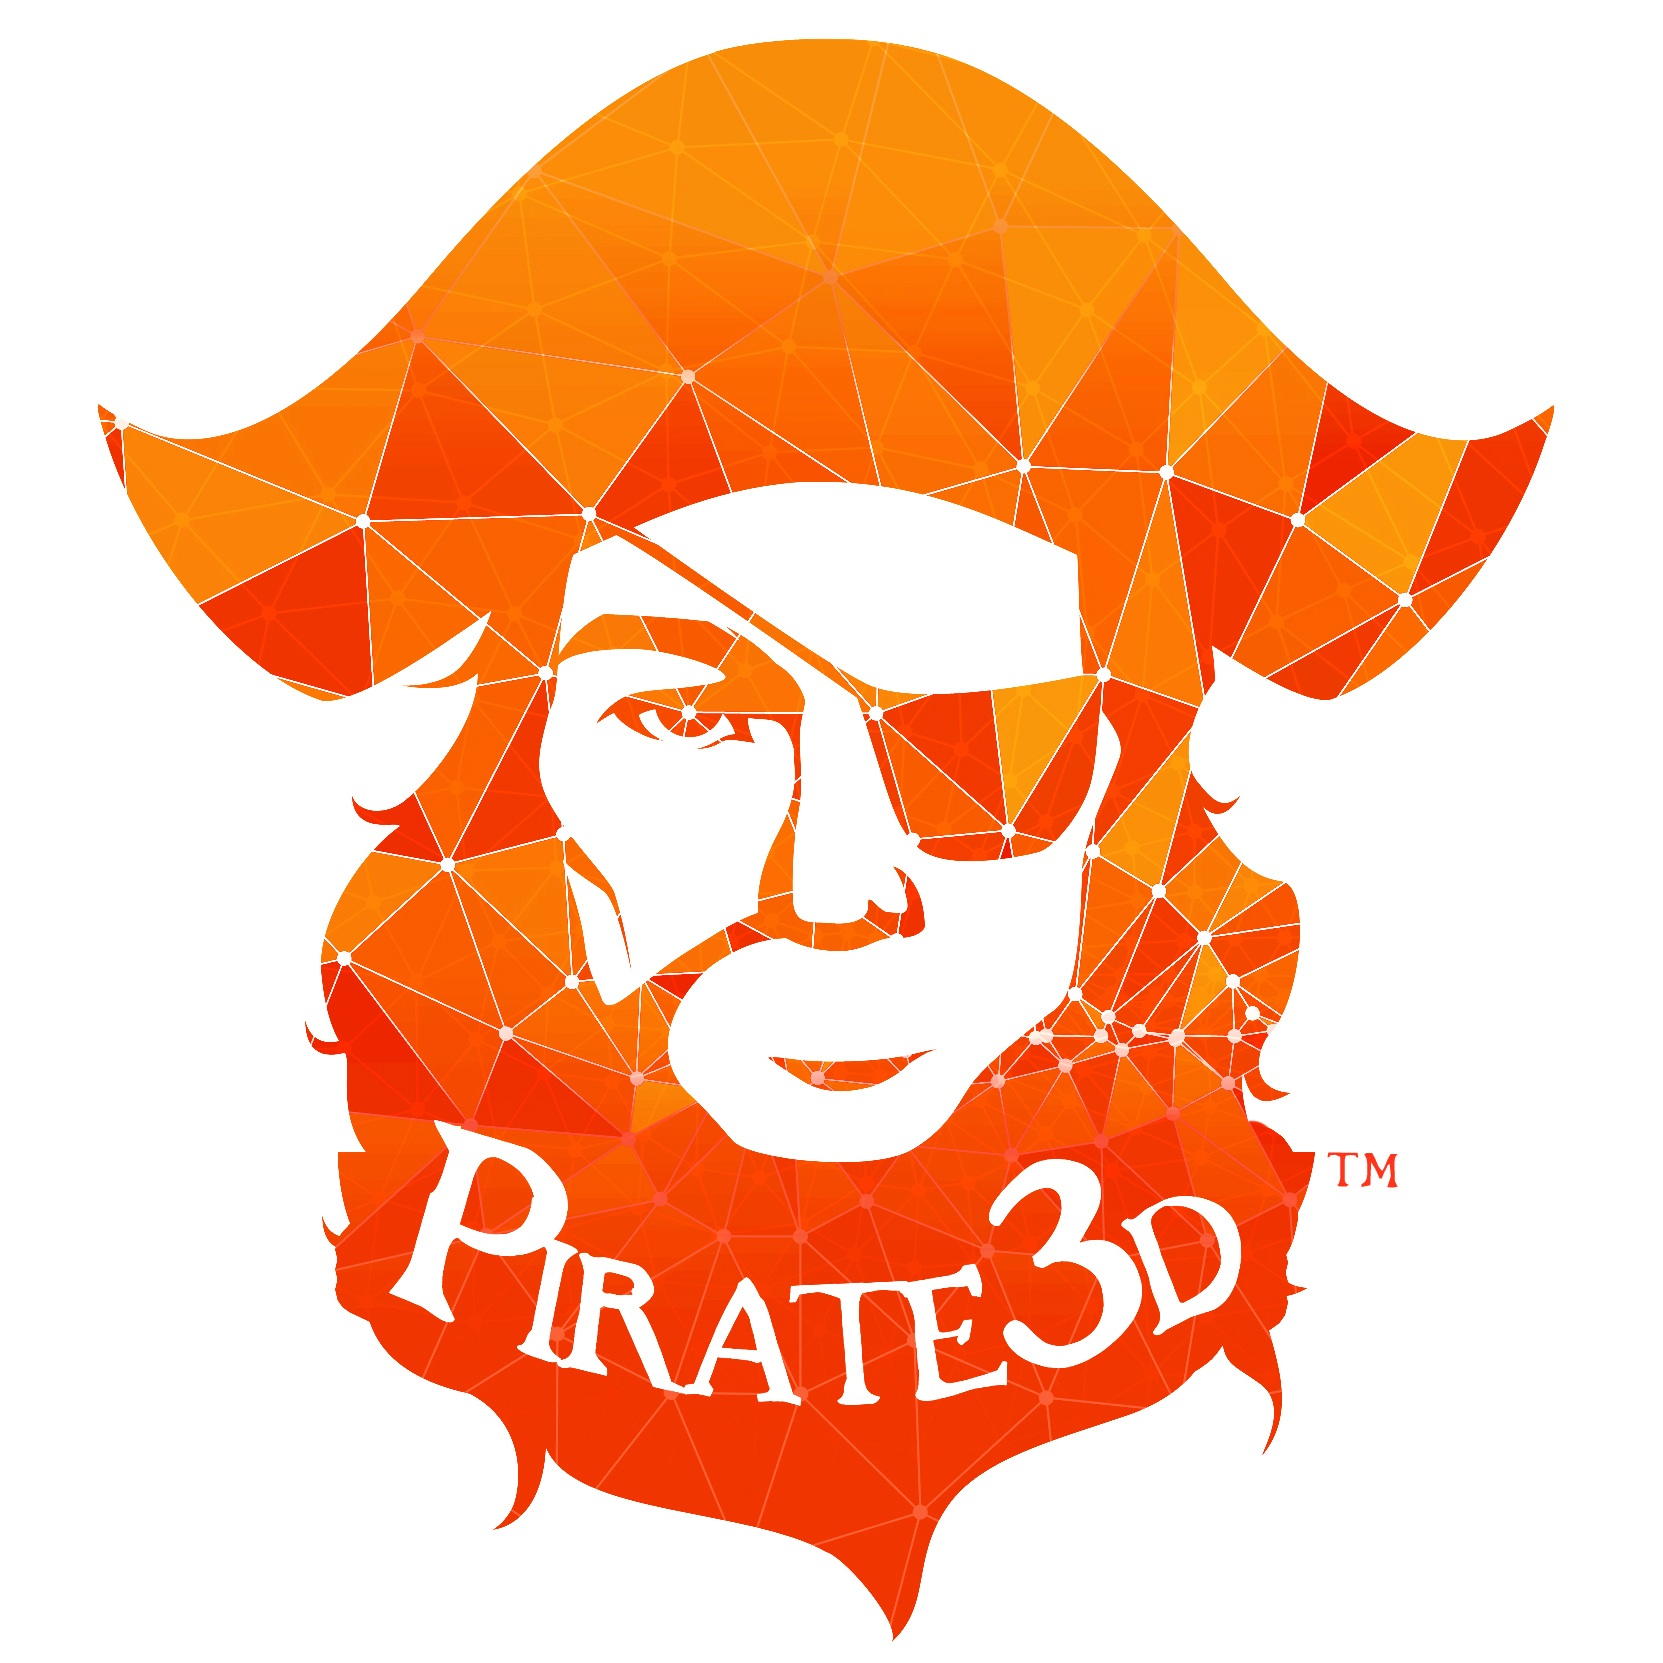 Pirate3D To Sail Again? Or 3D Hubs To The Rescue?